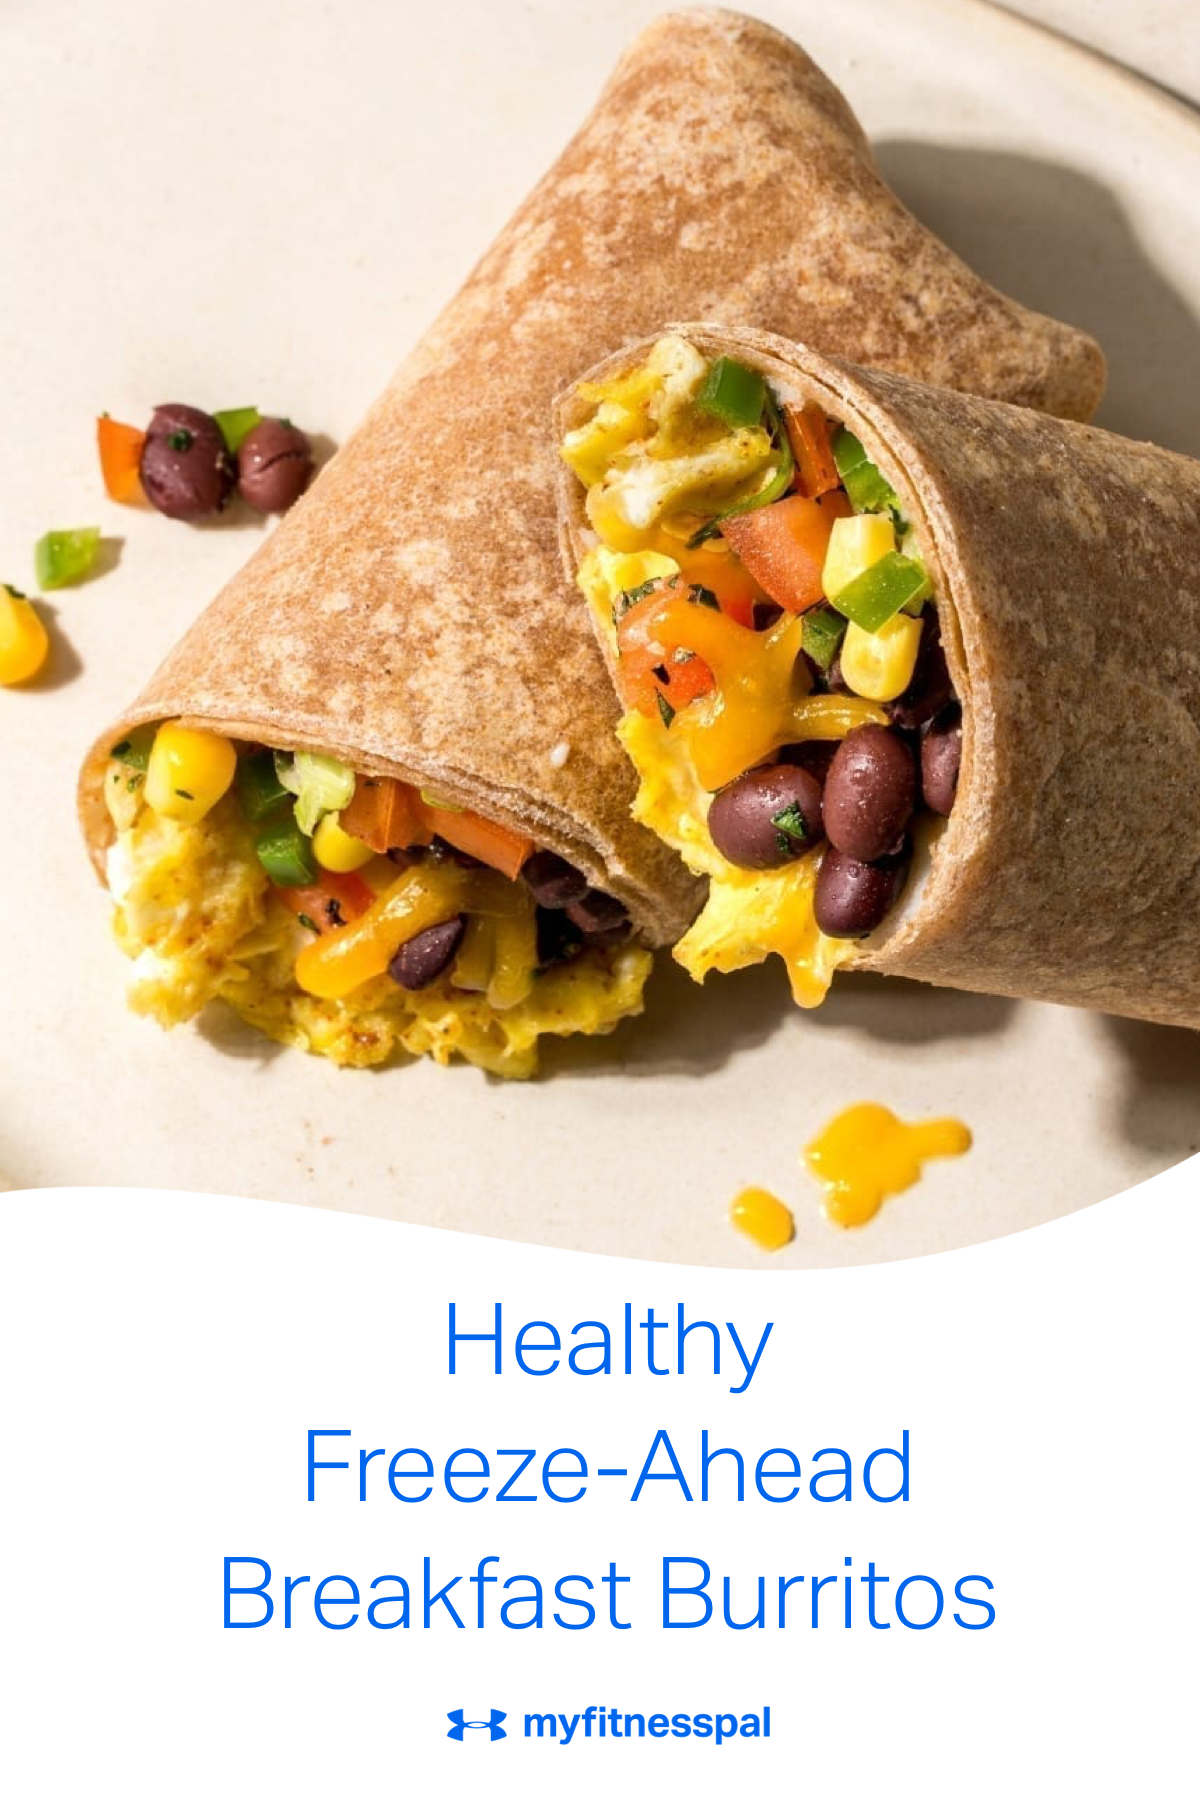 The Best Breakfast Burrito Recipes To Start Your Day With Keto Nutrition Nutrition Recipes Flax Seed